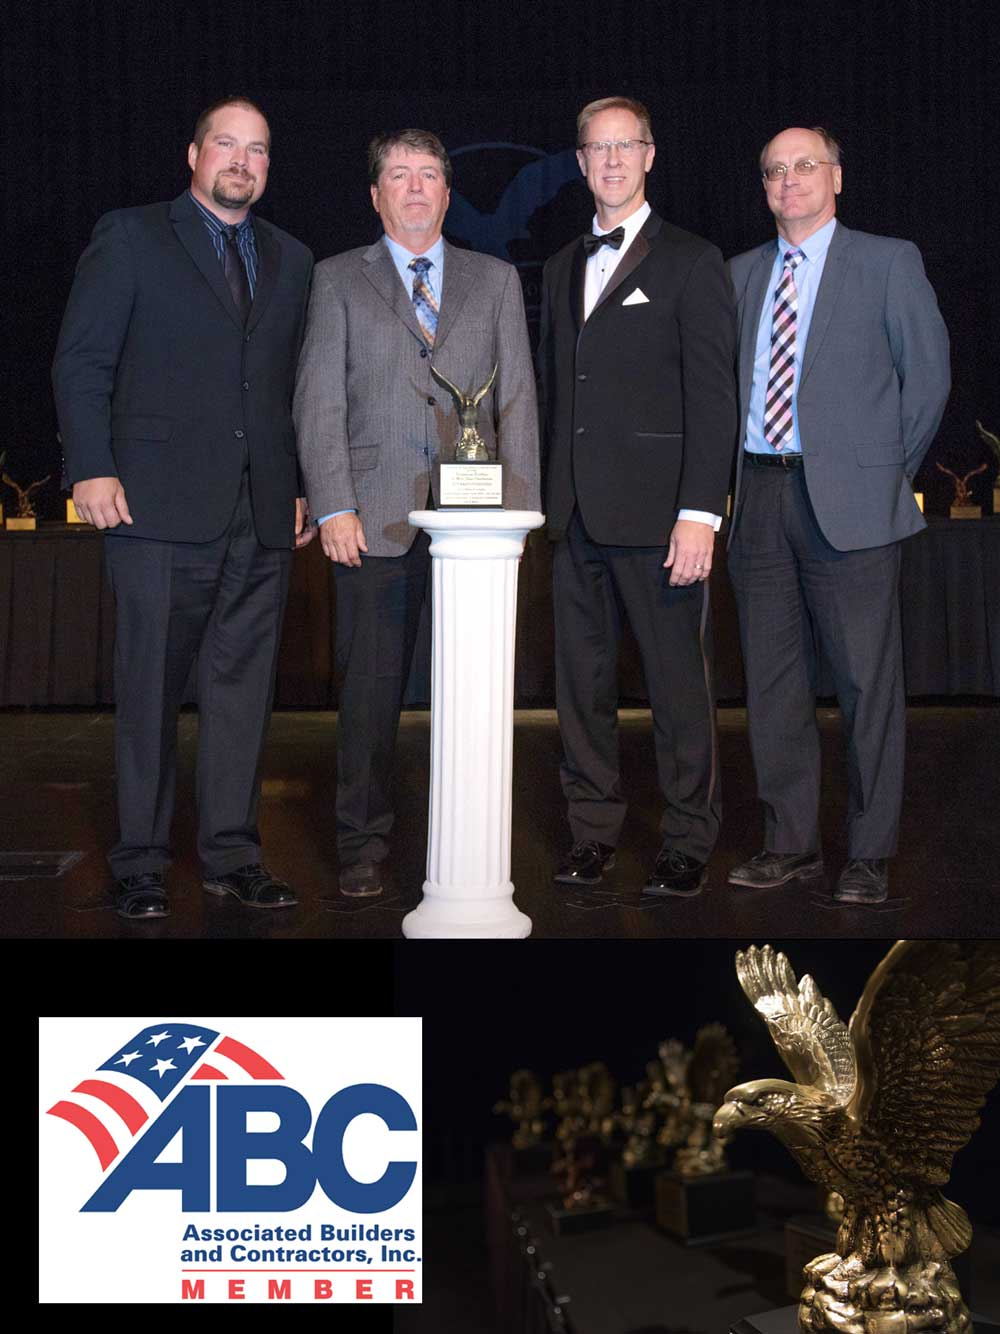 Carl A. Nelson and Company Wins Big at ABC of Iowa Awards Gala